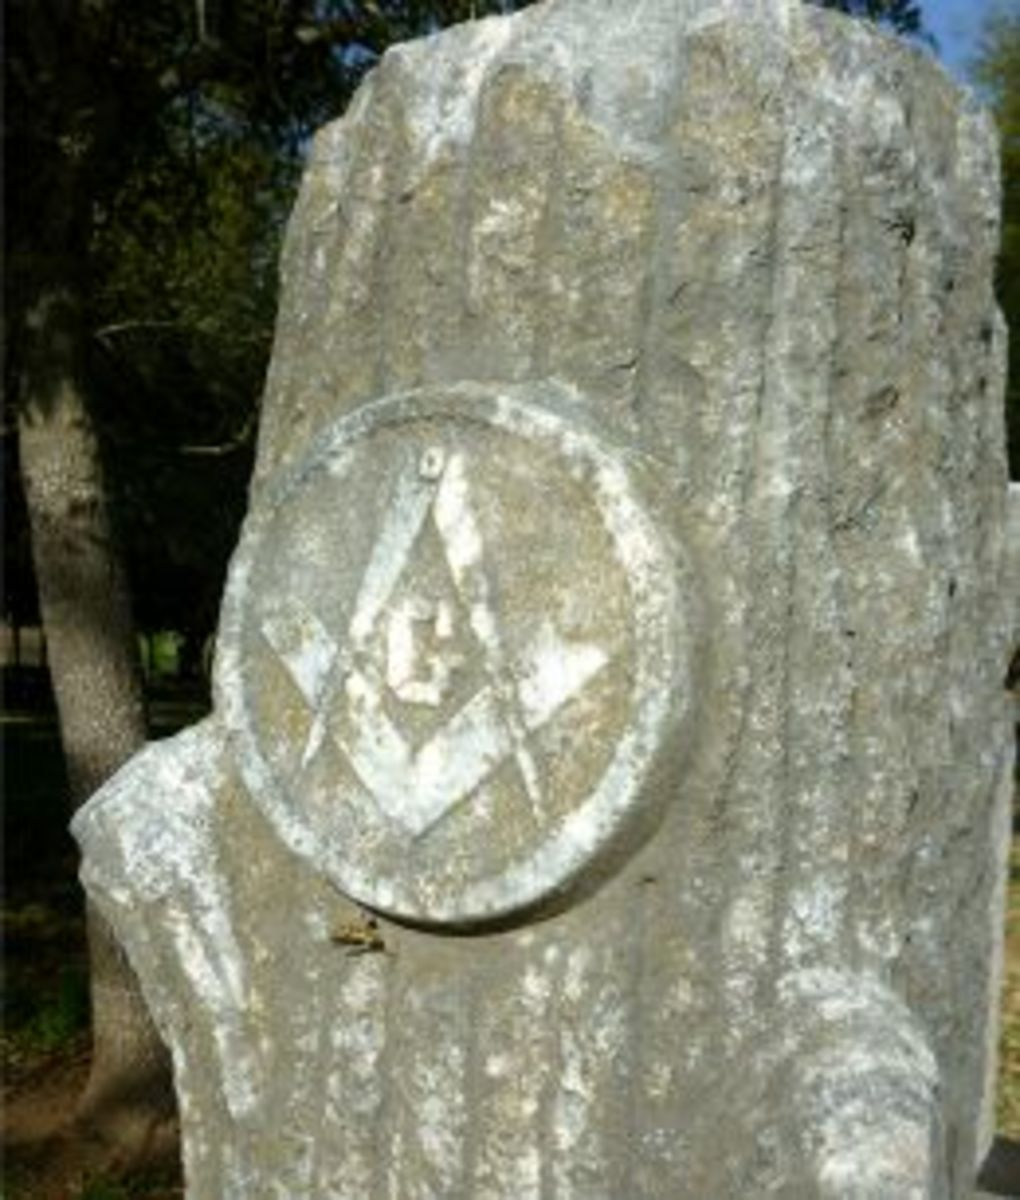 Note the square and compass design (Masonic symbol) on this Woodmen monument